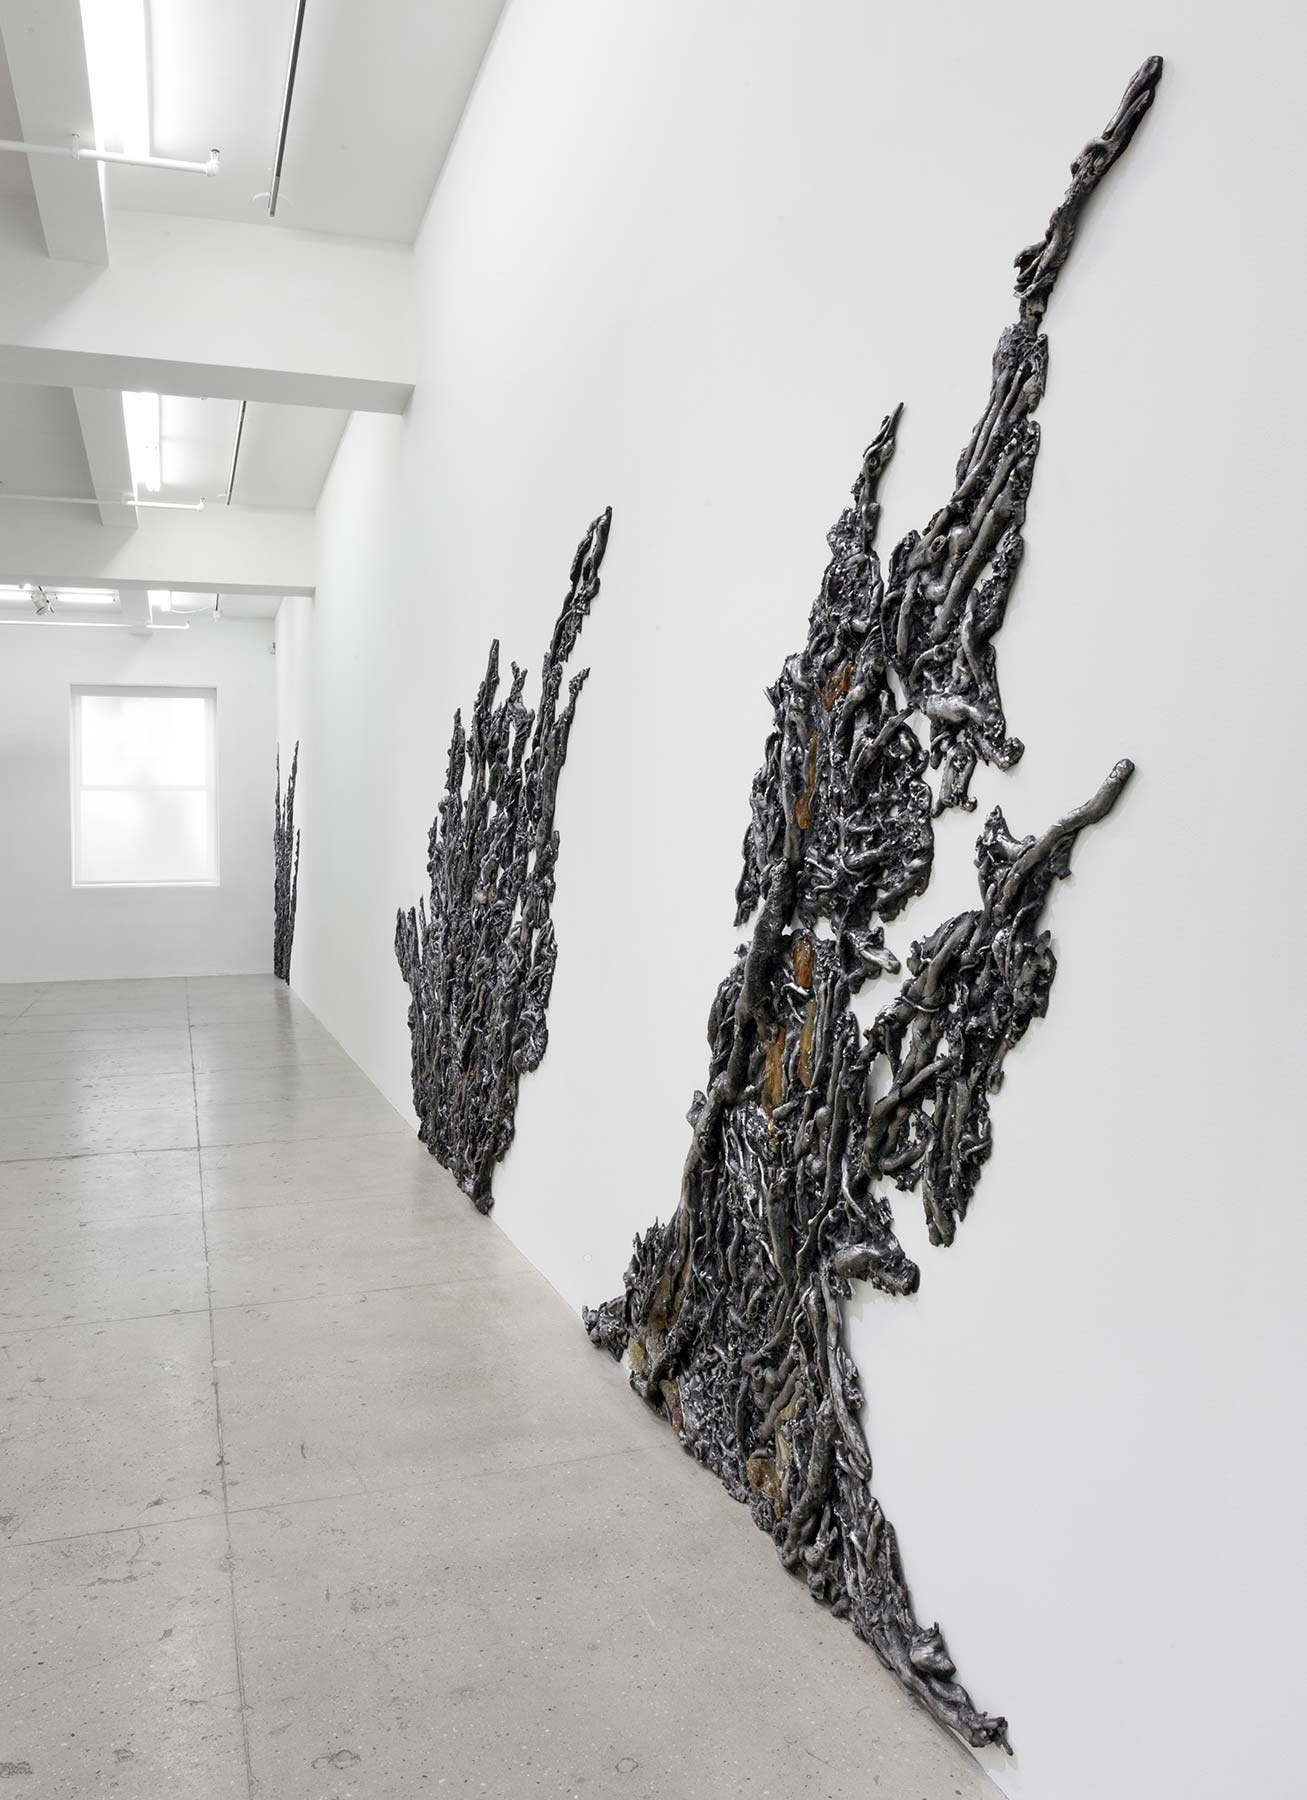 Entwined, Marian Goodman Gallery, NY